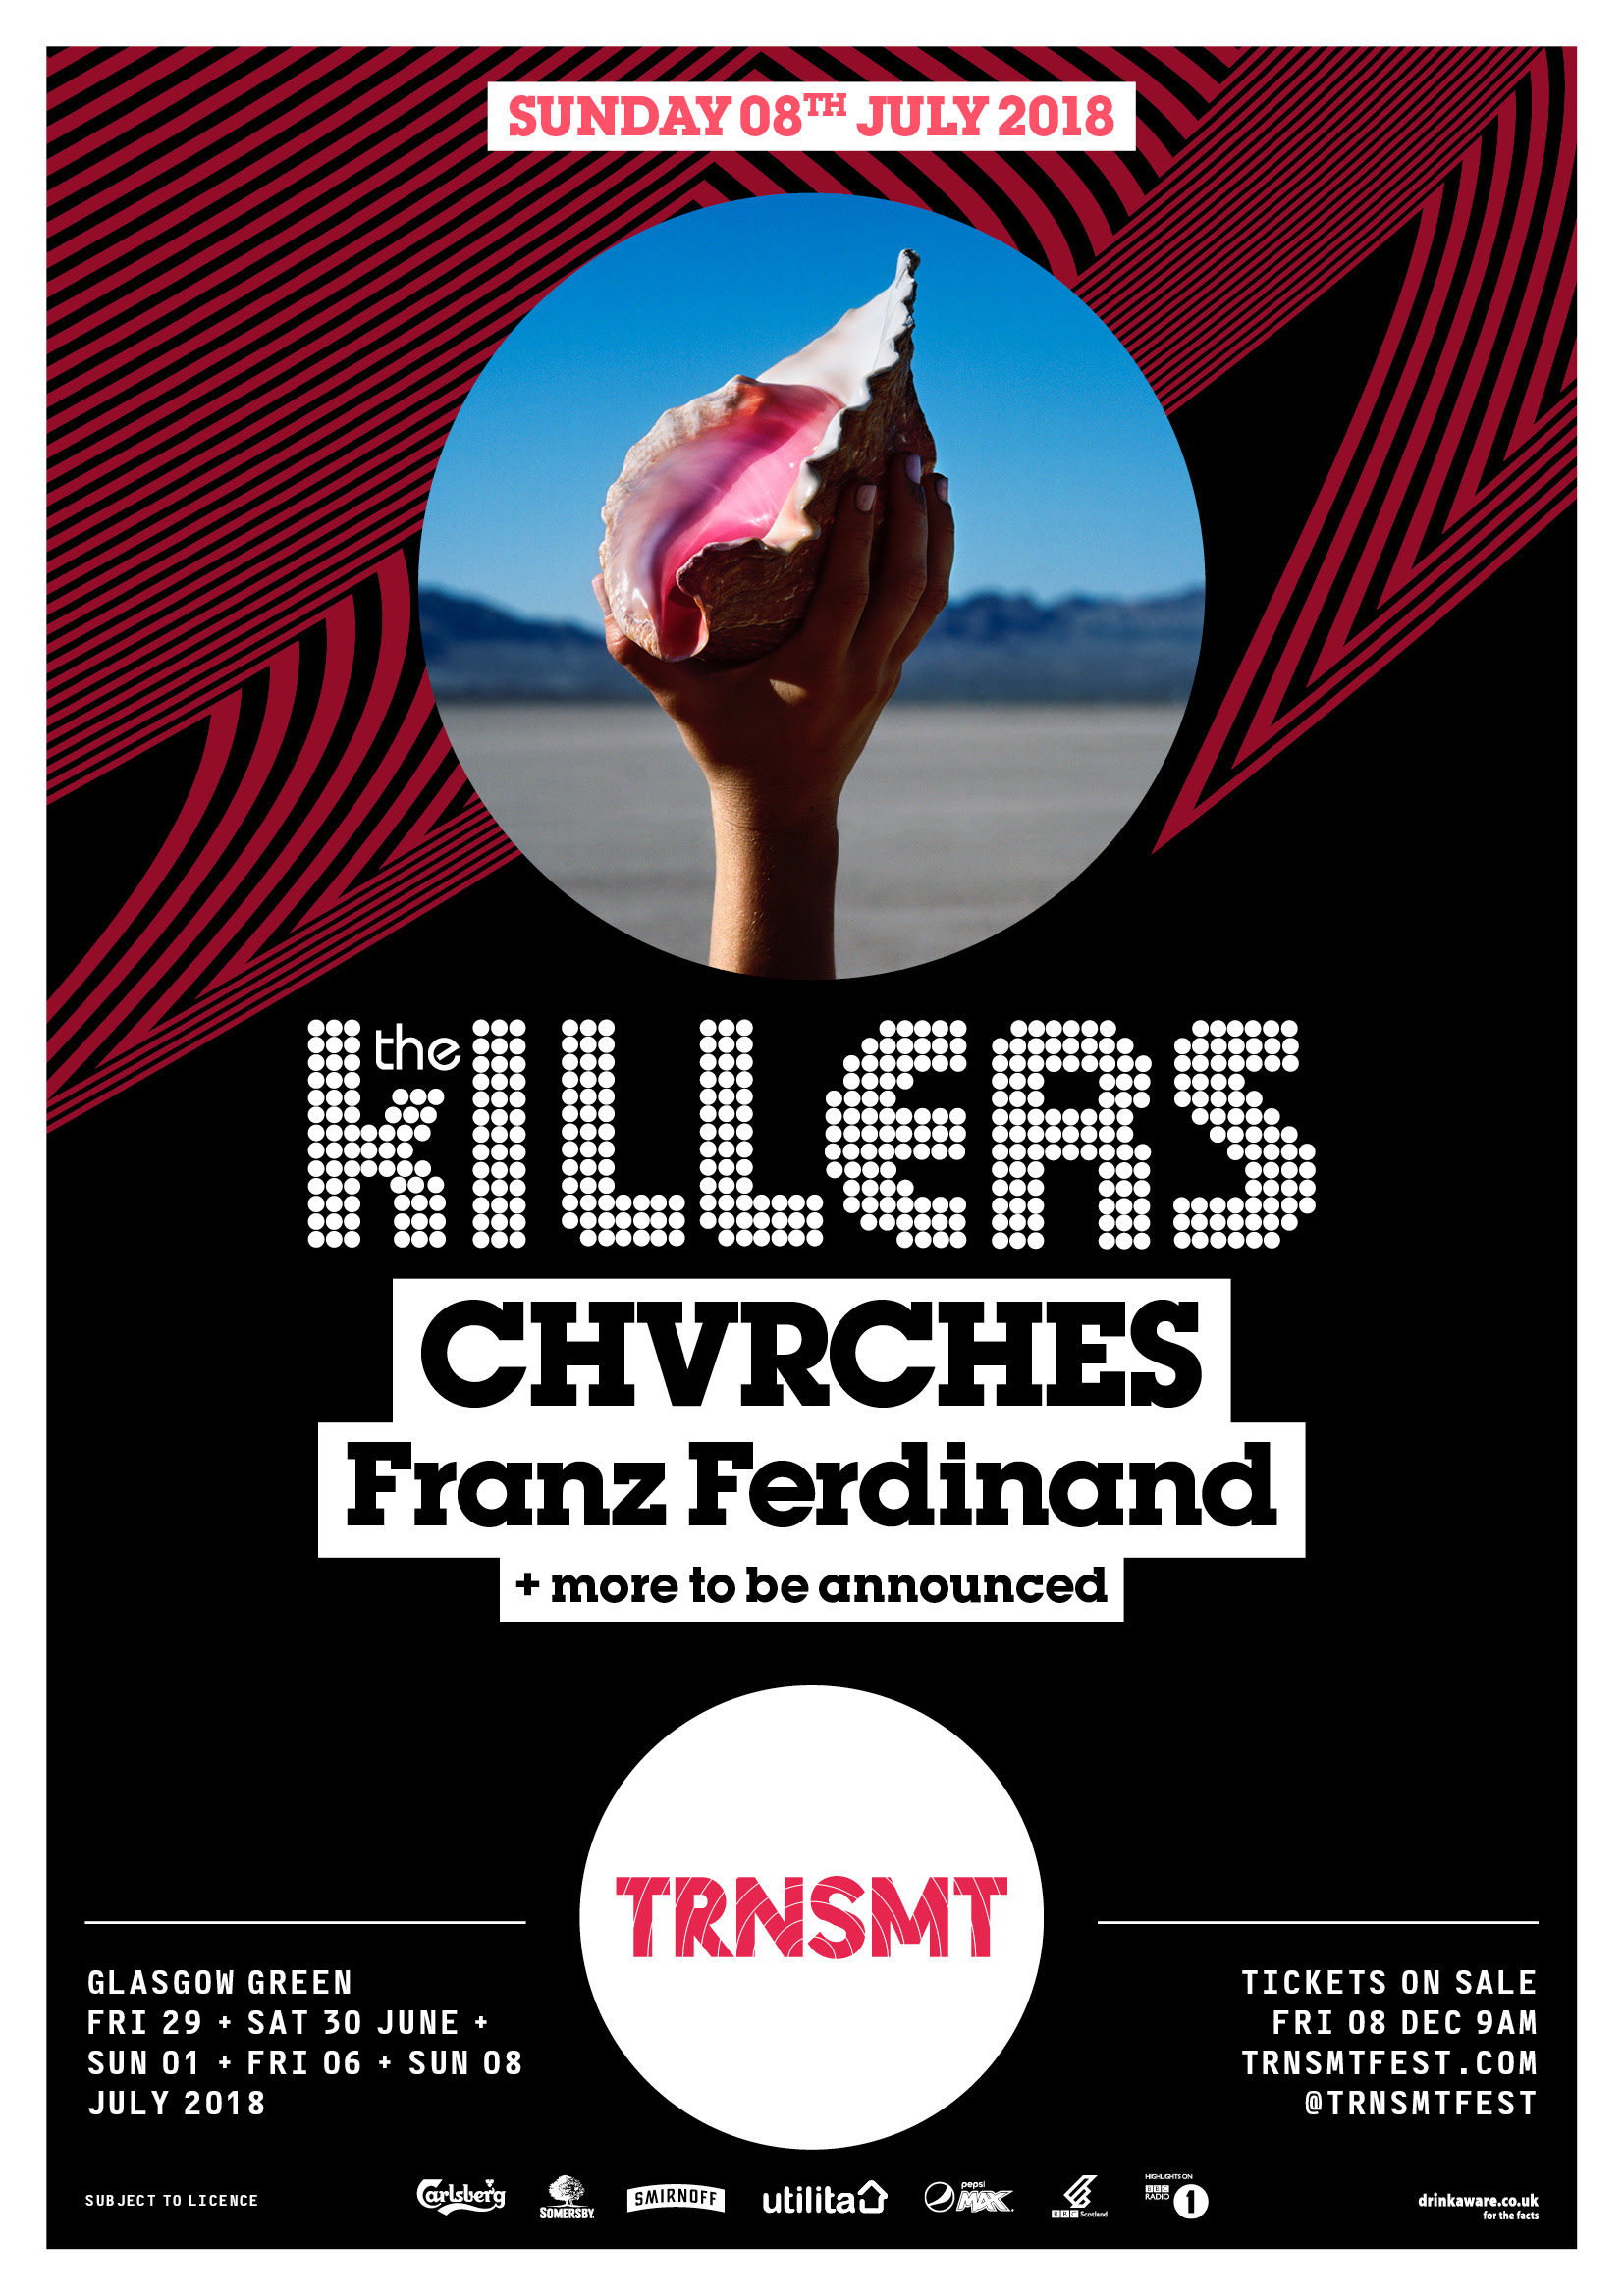 TRNSMT: NEW HEADLINER THE KILLERS PLUS CHVRCHES AND FRANZ FERDINAND